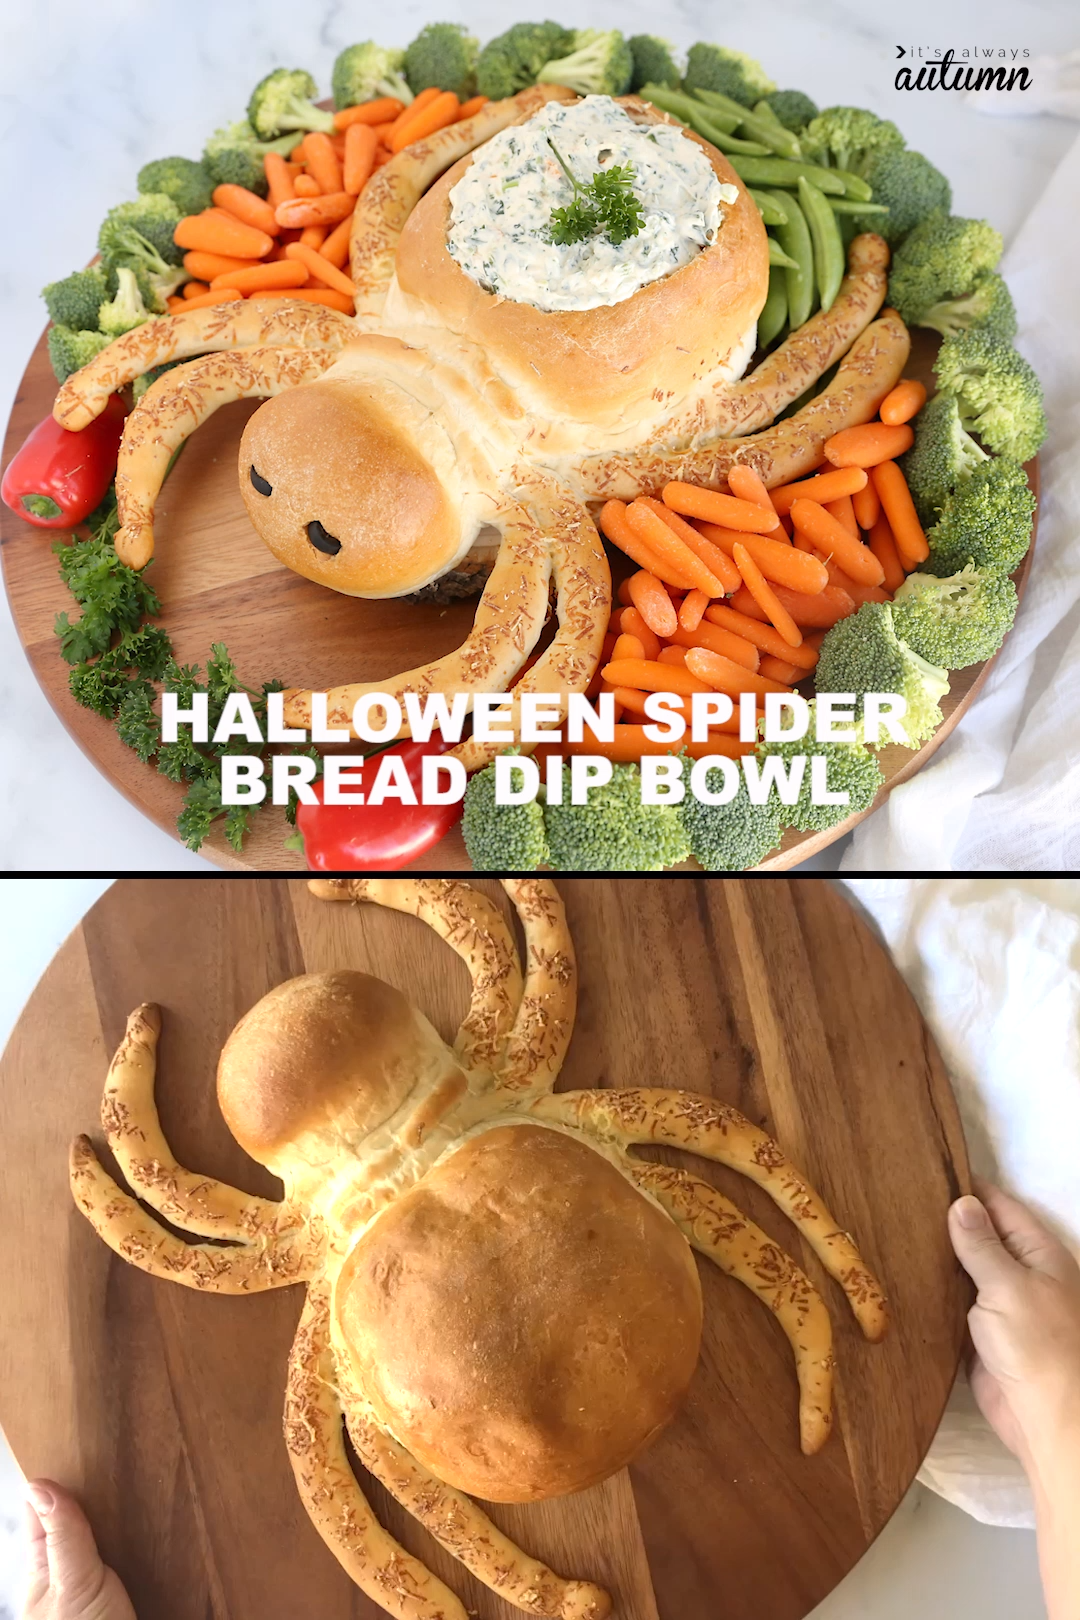 Spider Bread Dip Bowl #appetizersforparty